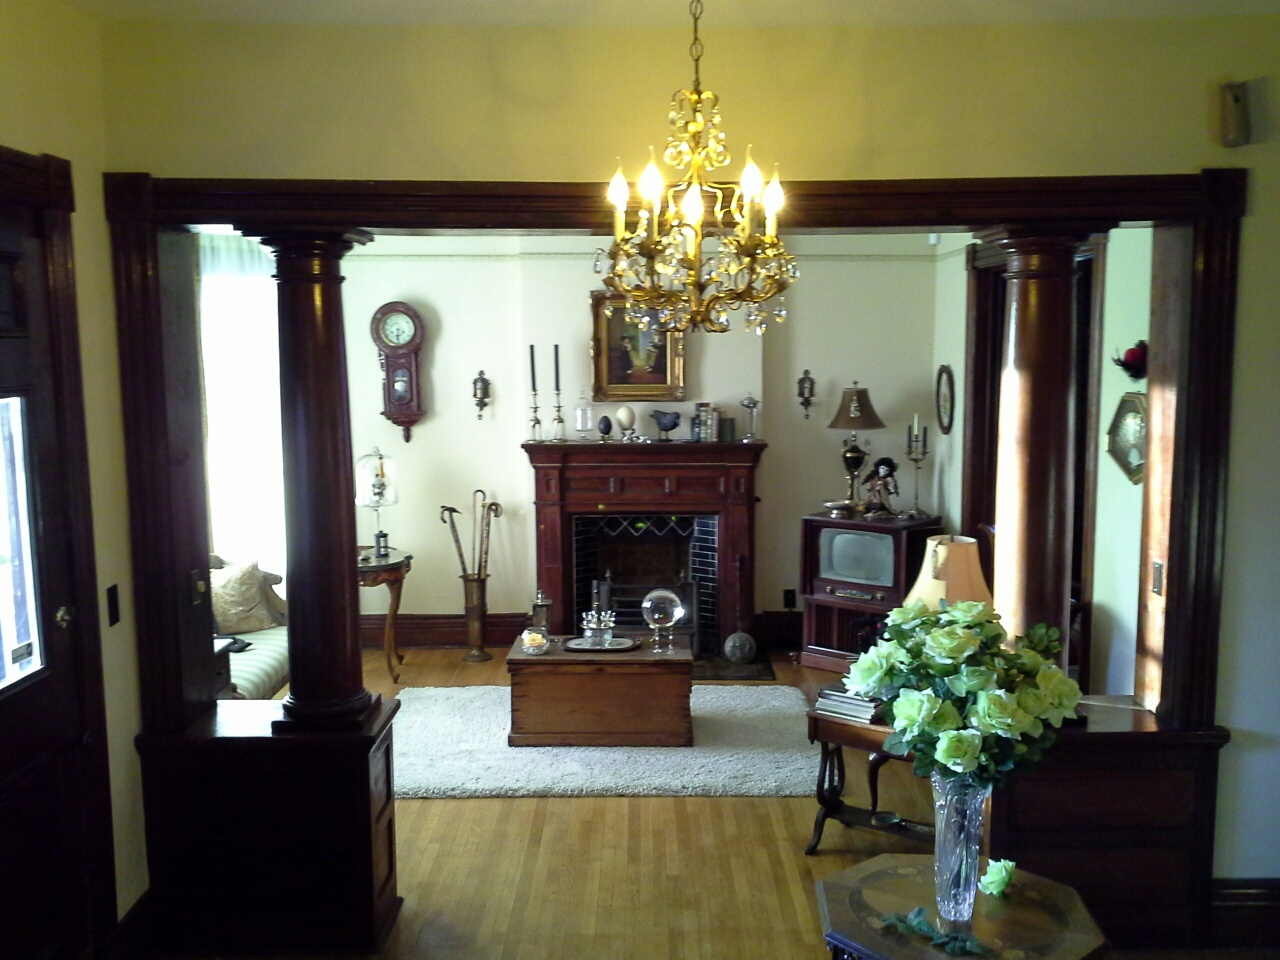 Parlor with Tuscan Pillars and Fireplace